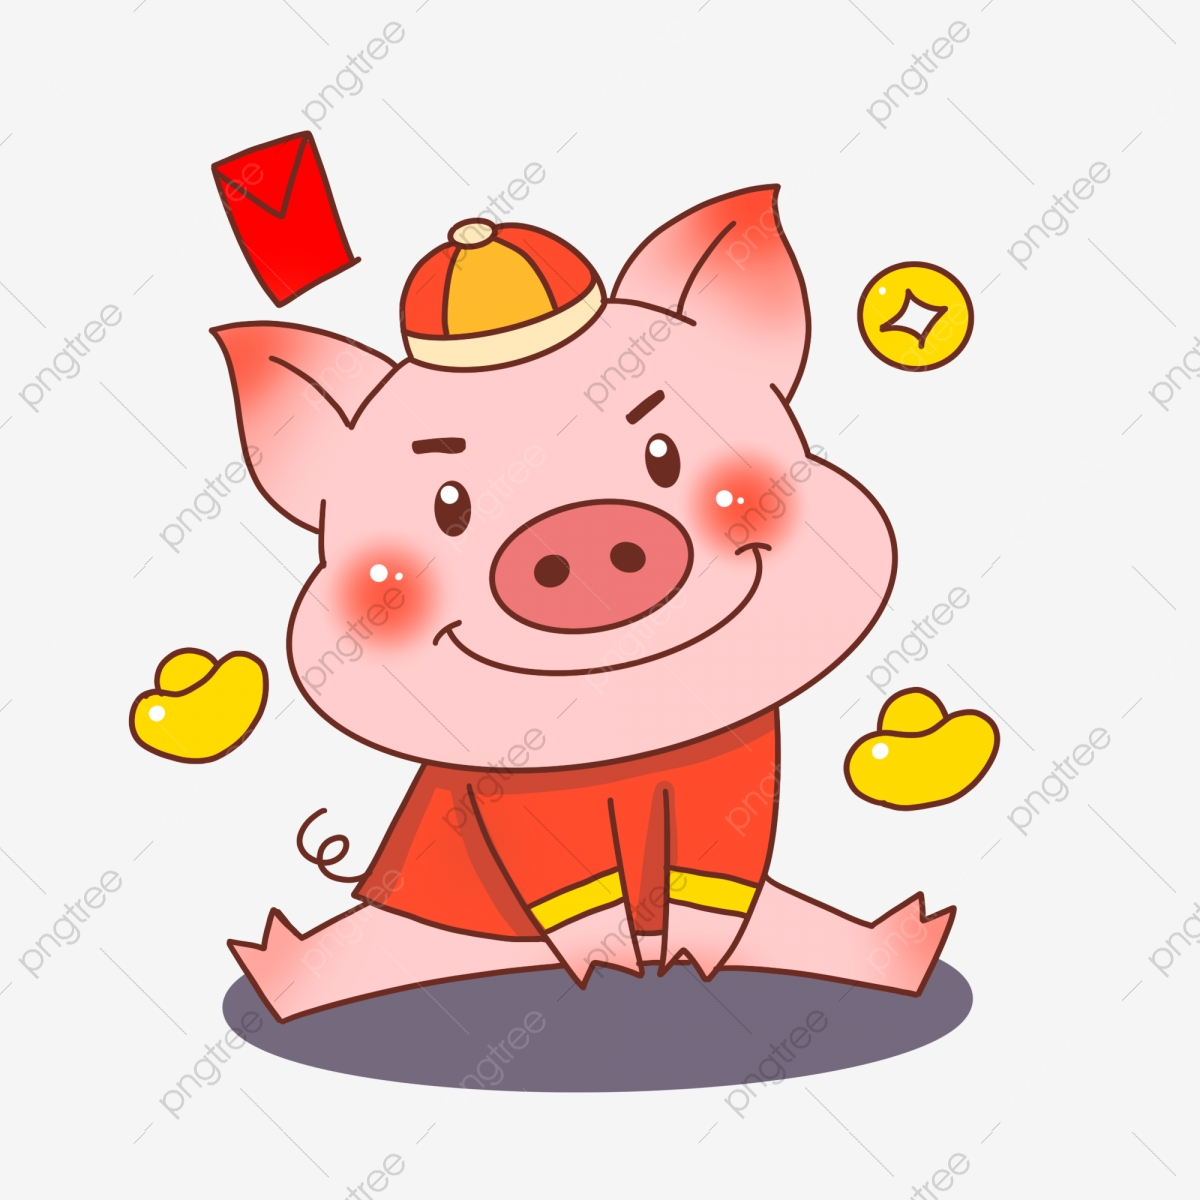 Animated Pig Cliparts - Cliparts Zone